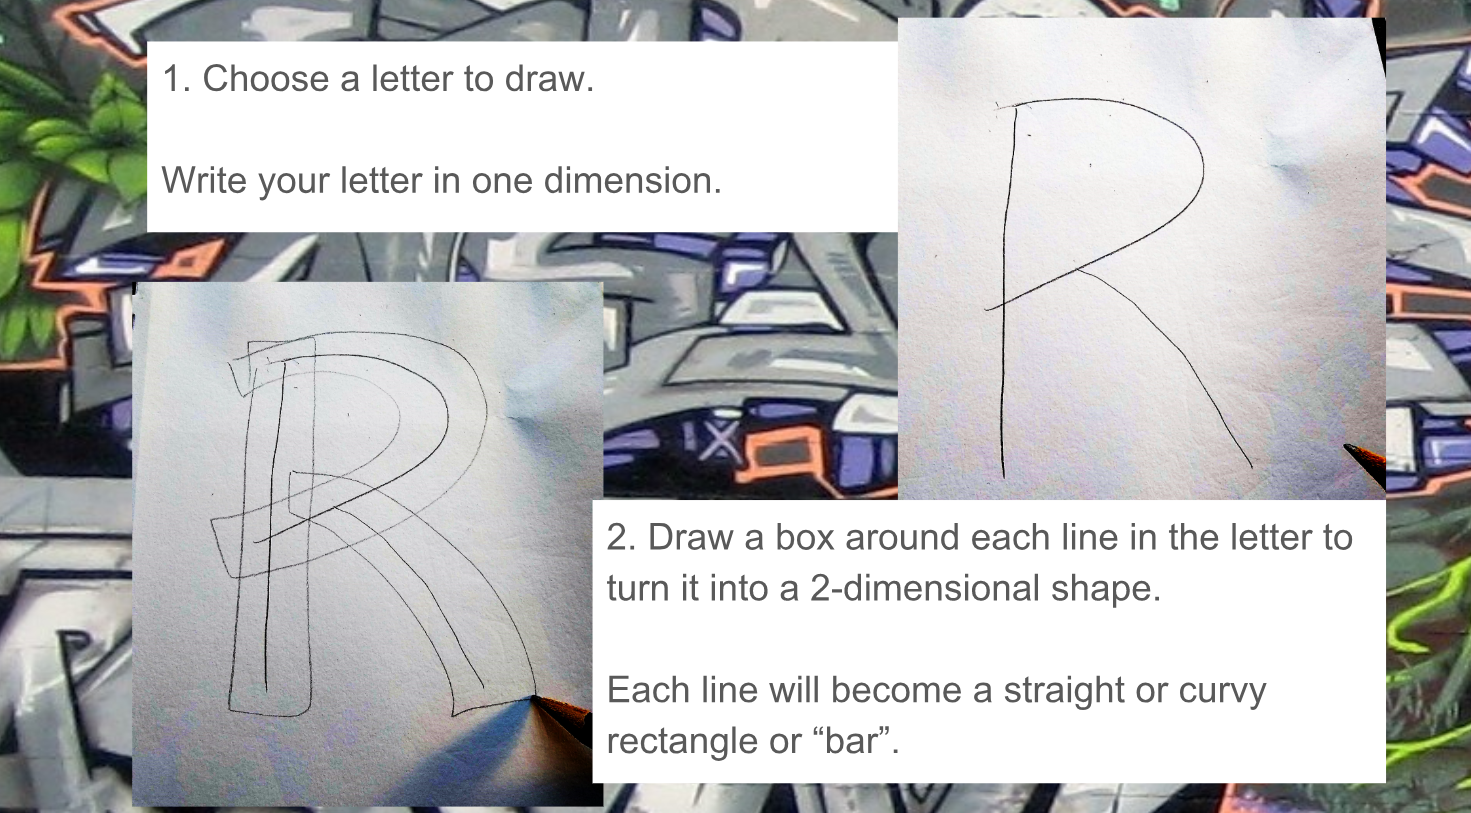 Use  this link  to launch a slide show with step-by-step instructions for drawing a graffiti style letter.